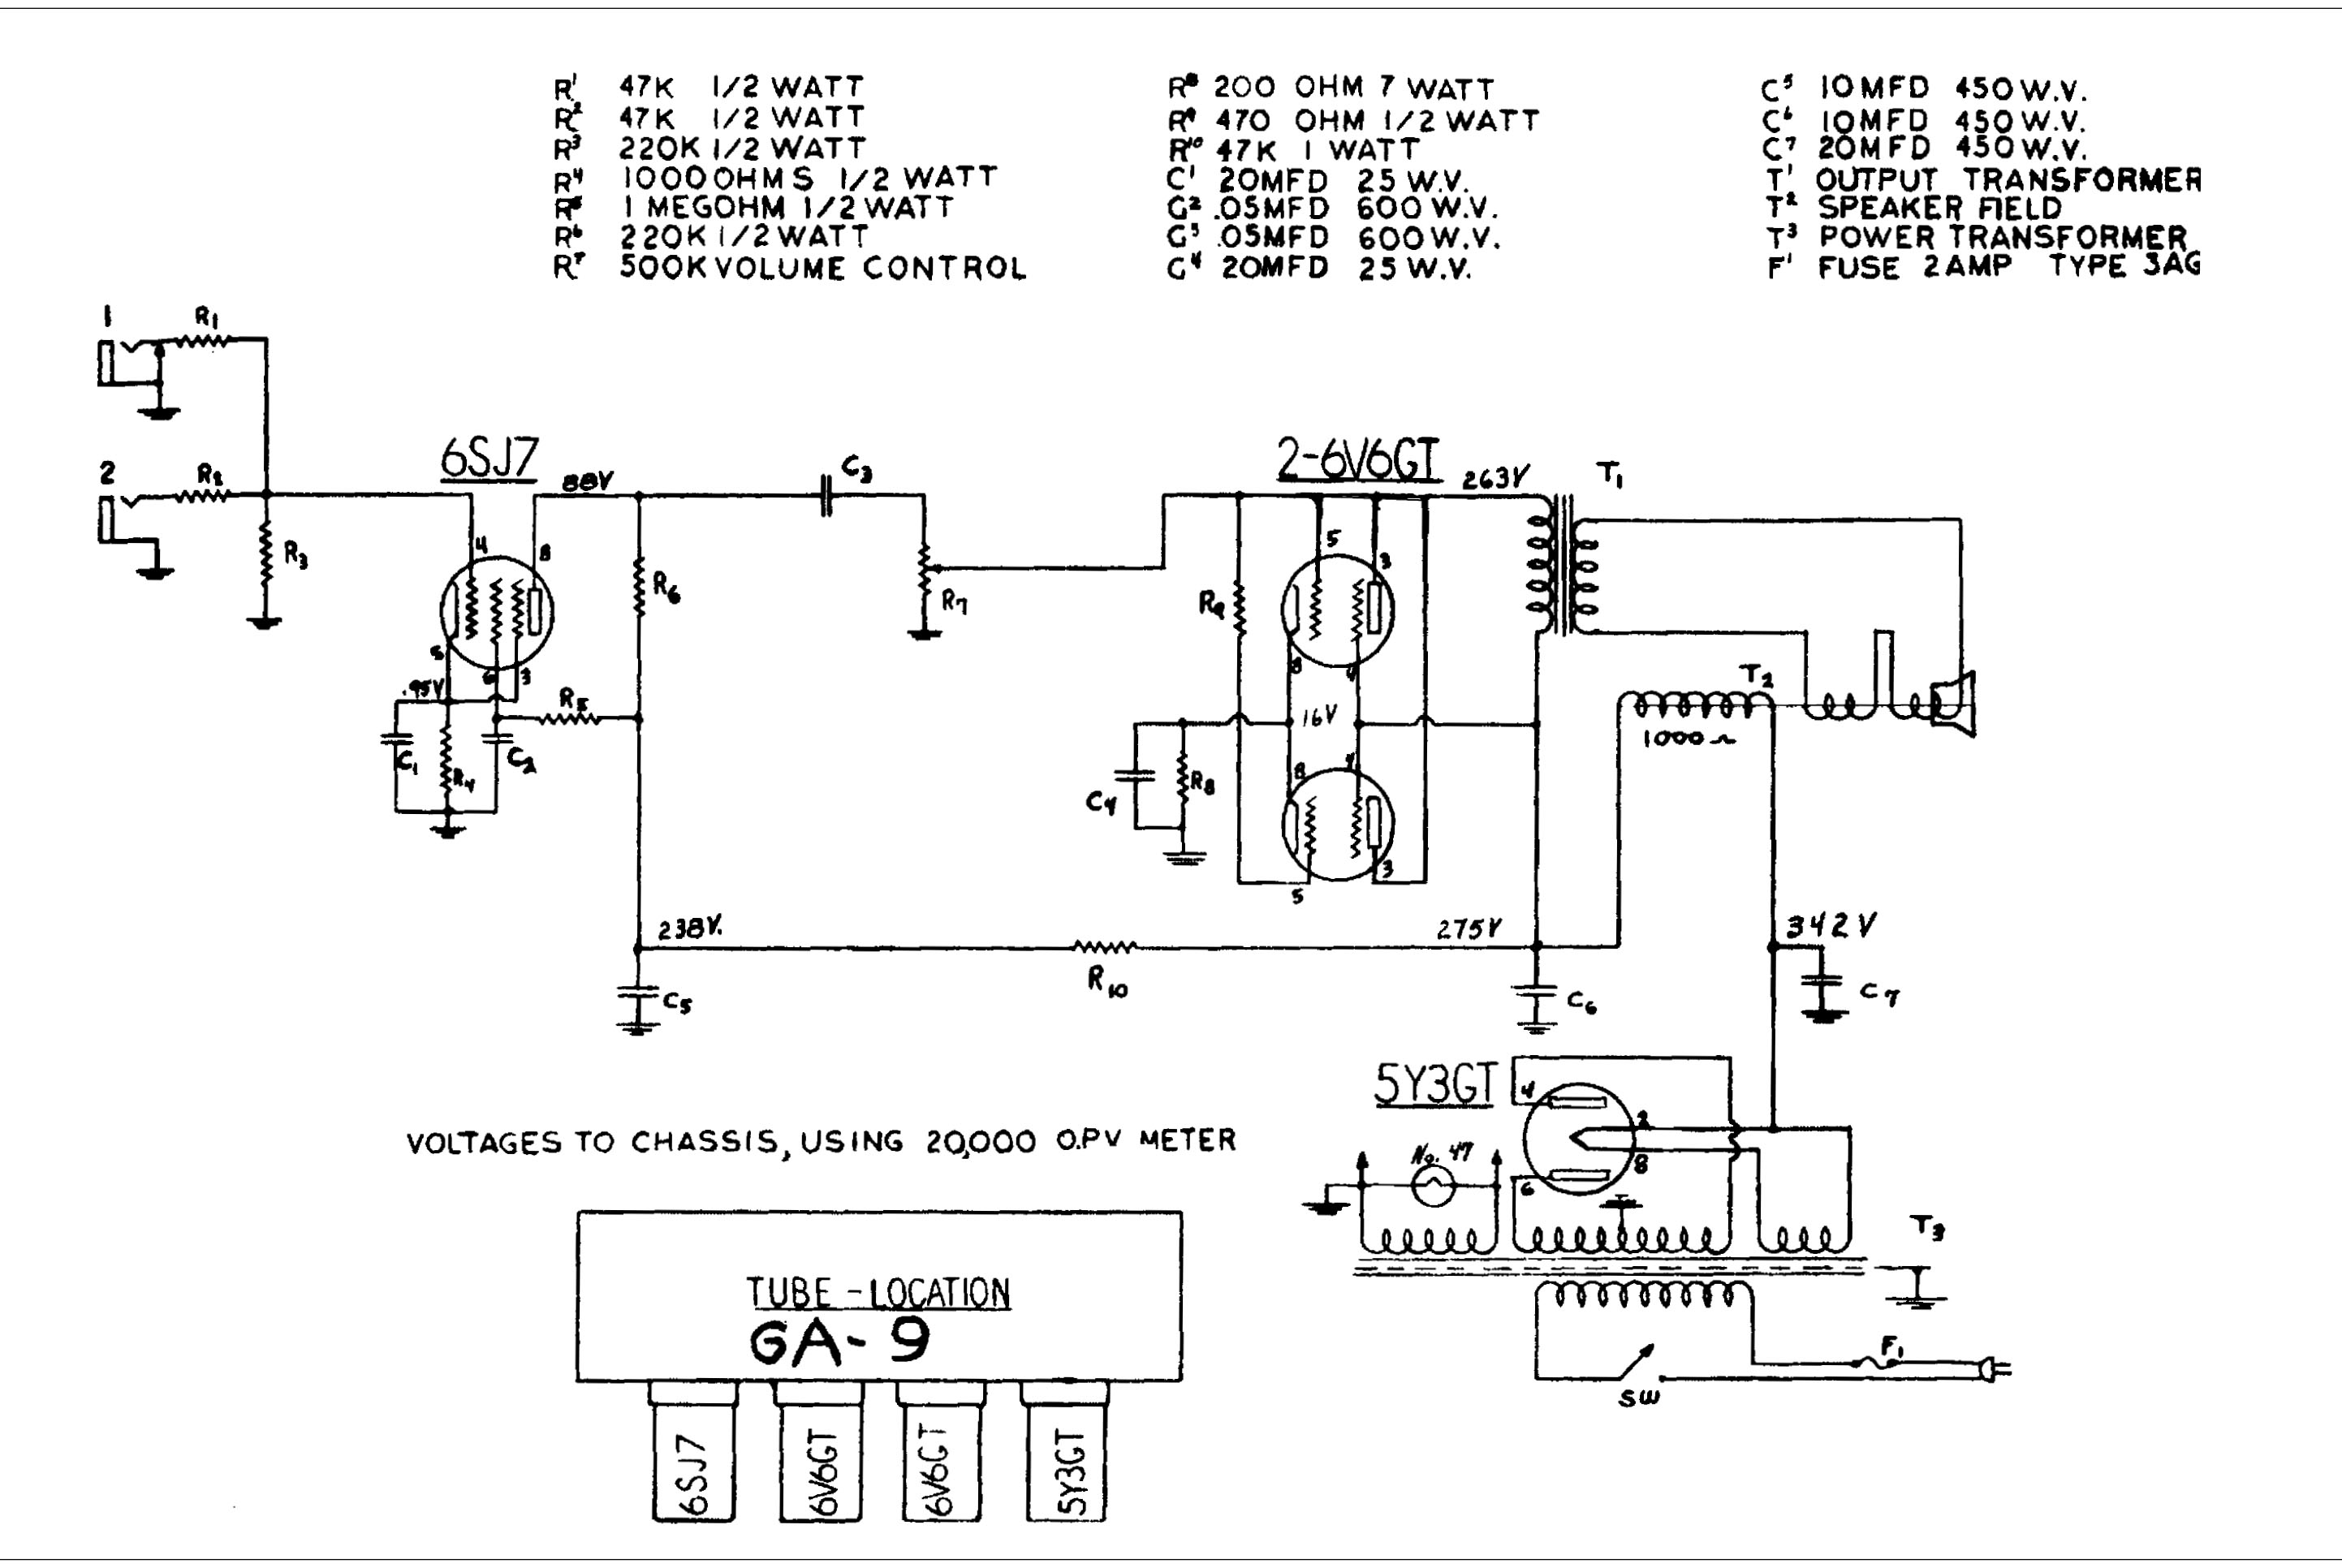 Single ended 2 x 6V6 in parallel schematic ideas? on isolation transformer wiring diagrams, 12 phase transformer diagrams, transformer hook up diagrams, electrical schematic diagrams, jefferson transformer wiring diagrams, hammond organ schematic diagrams, hammond organ wiring-diagram, transformer connection diagrams, hammond parts wiring diagrams,